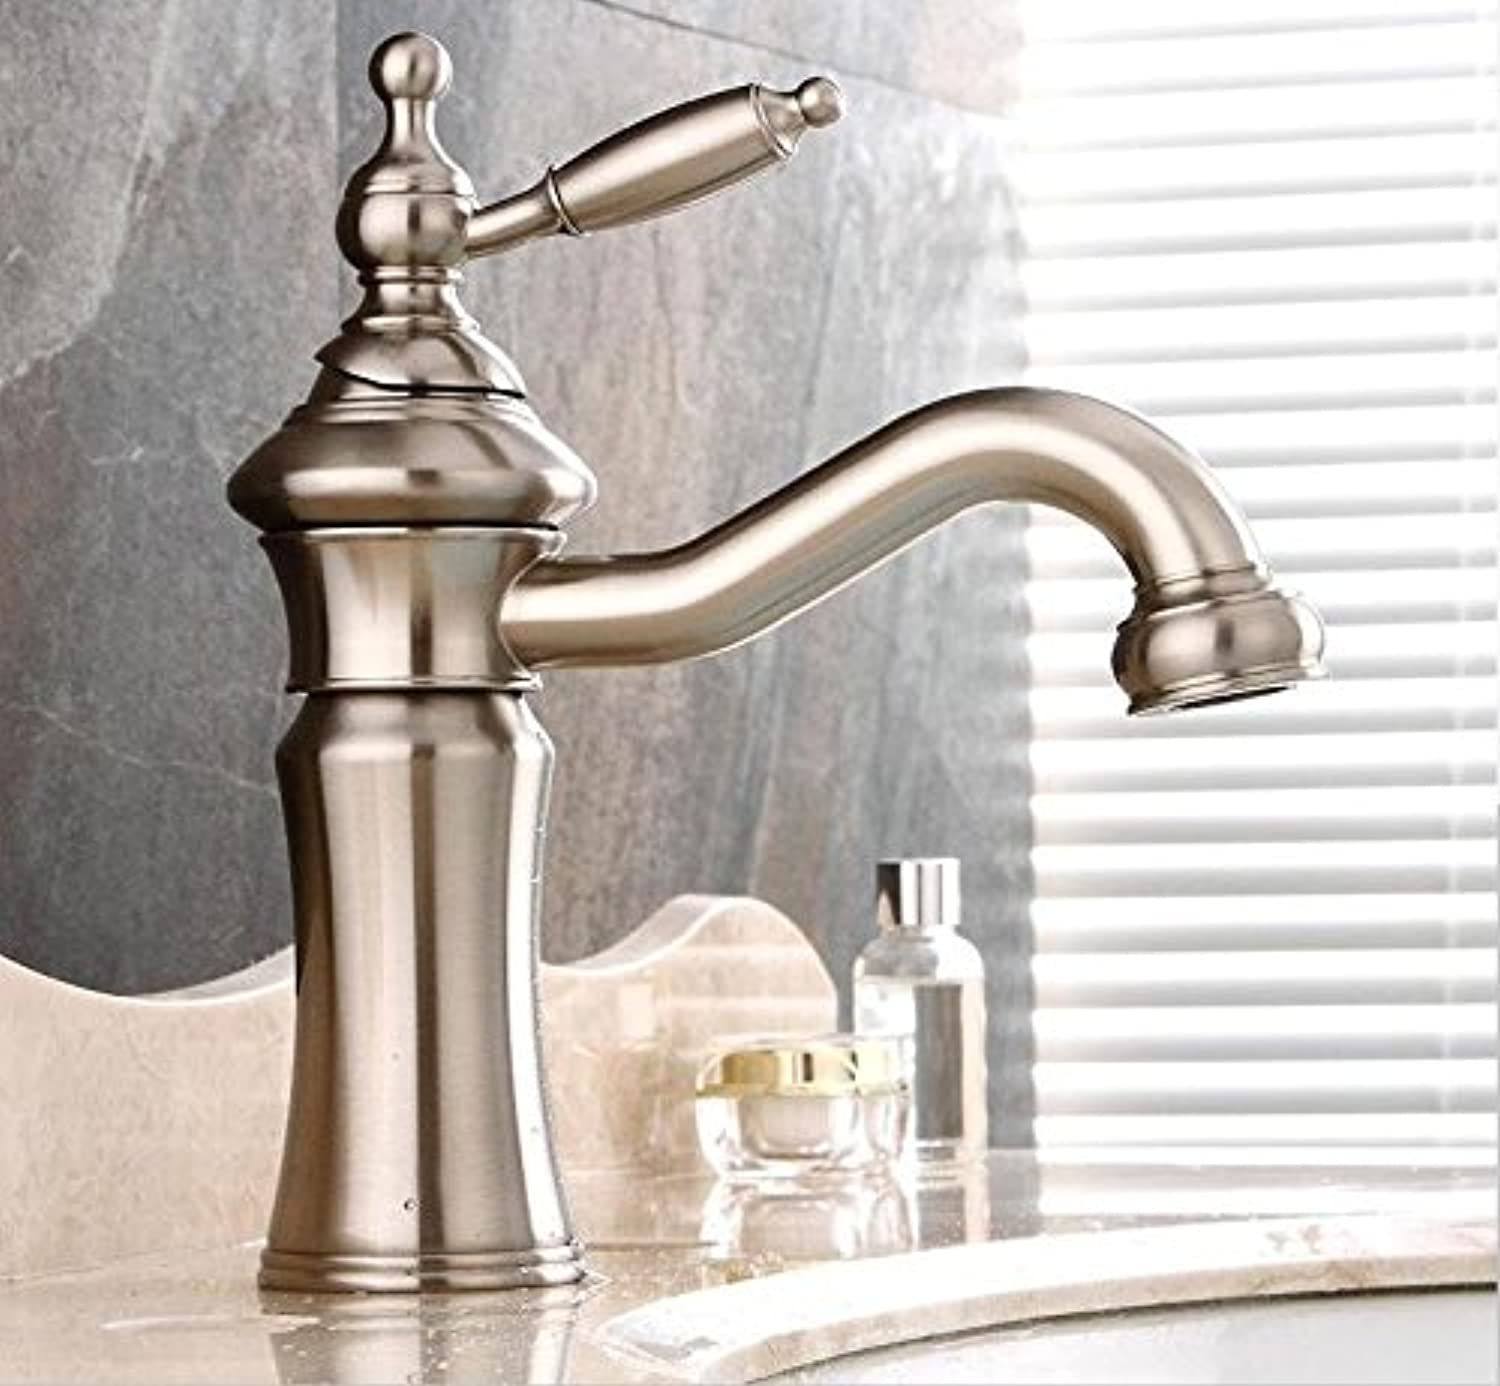 QUSLT golden Faucet, Cold And Hot European Faucet Full Copper Bath With High Basin Drawing Water Faucet Faucet